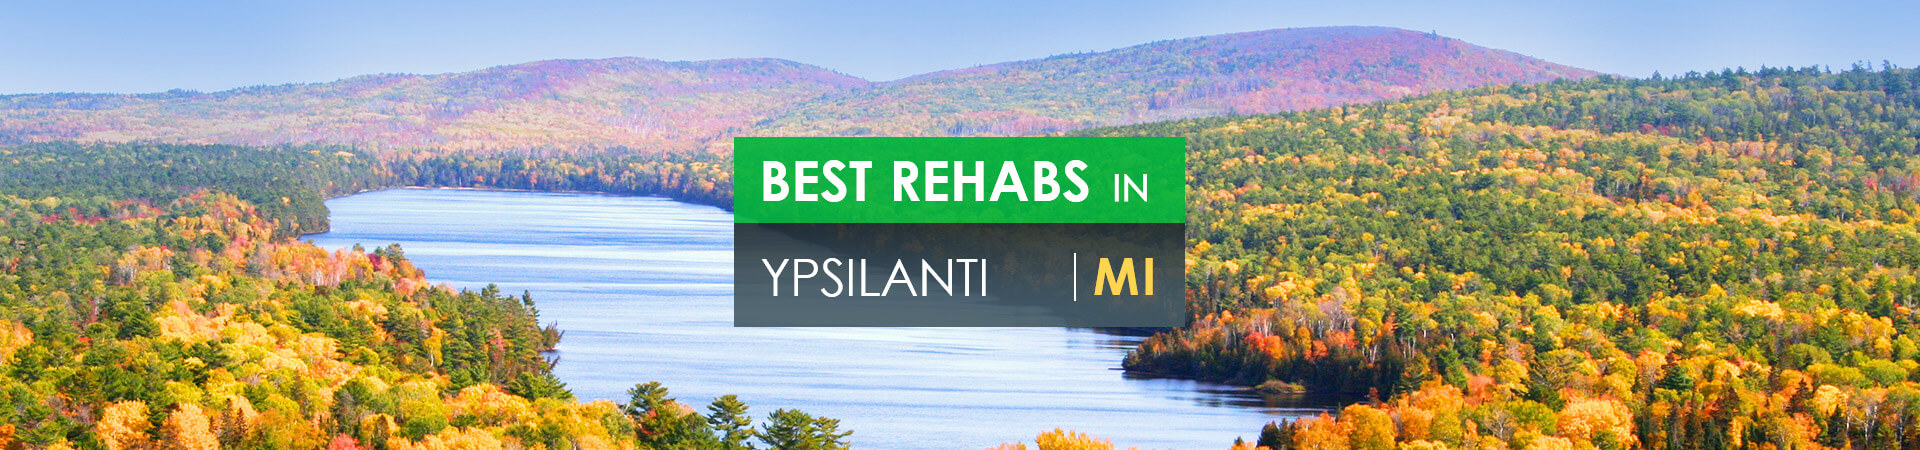 Best rehabs in Ypsilanti, MI